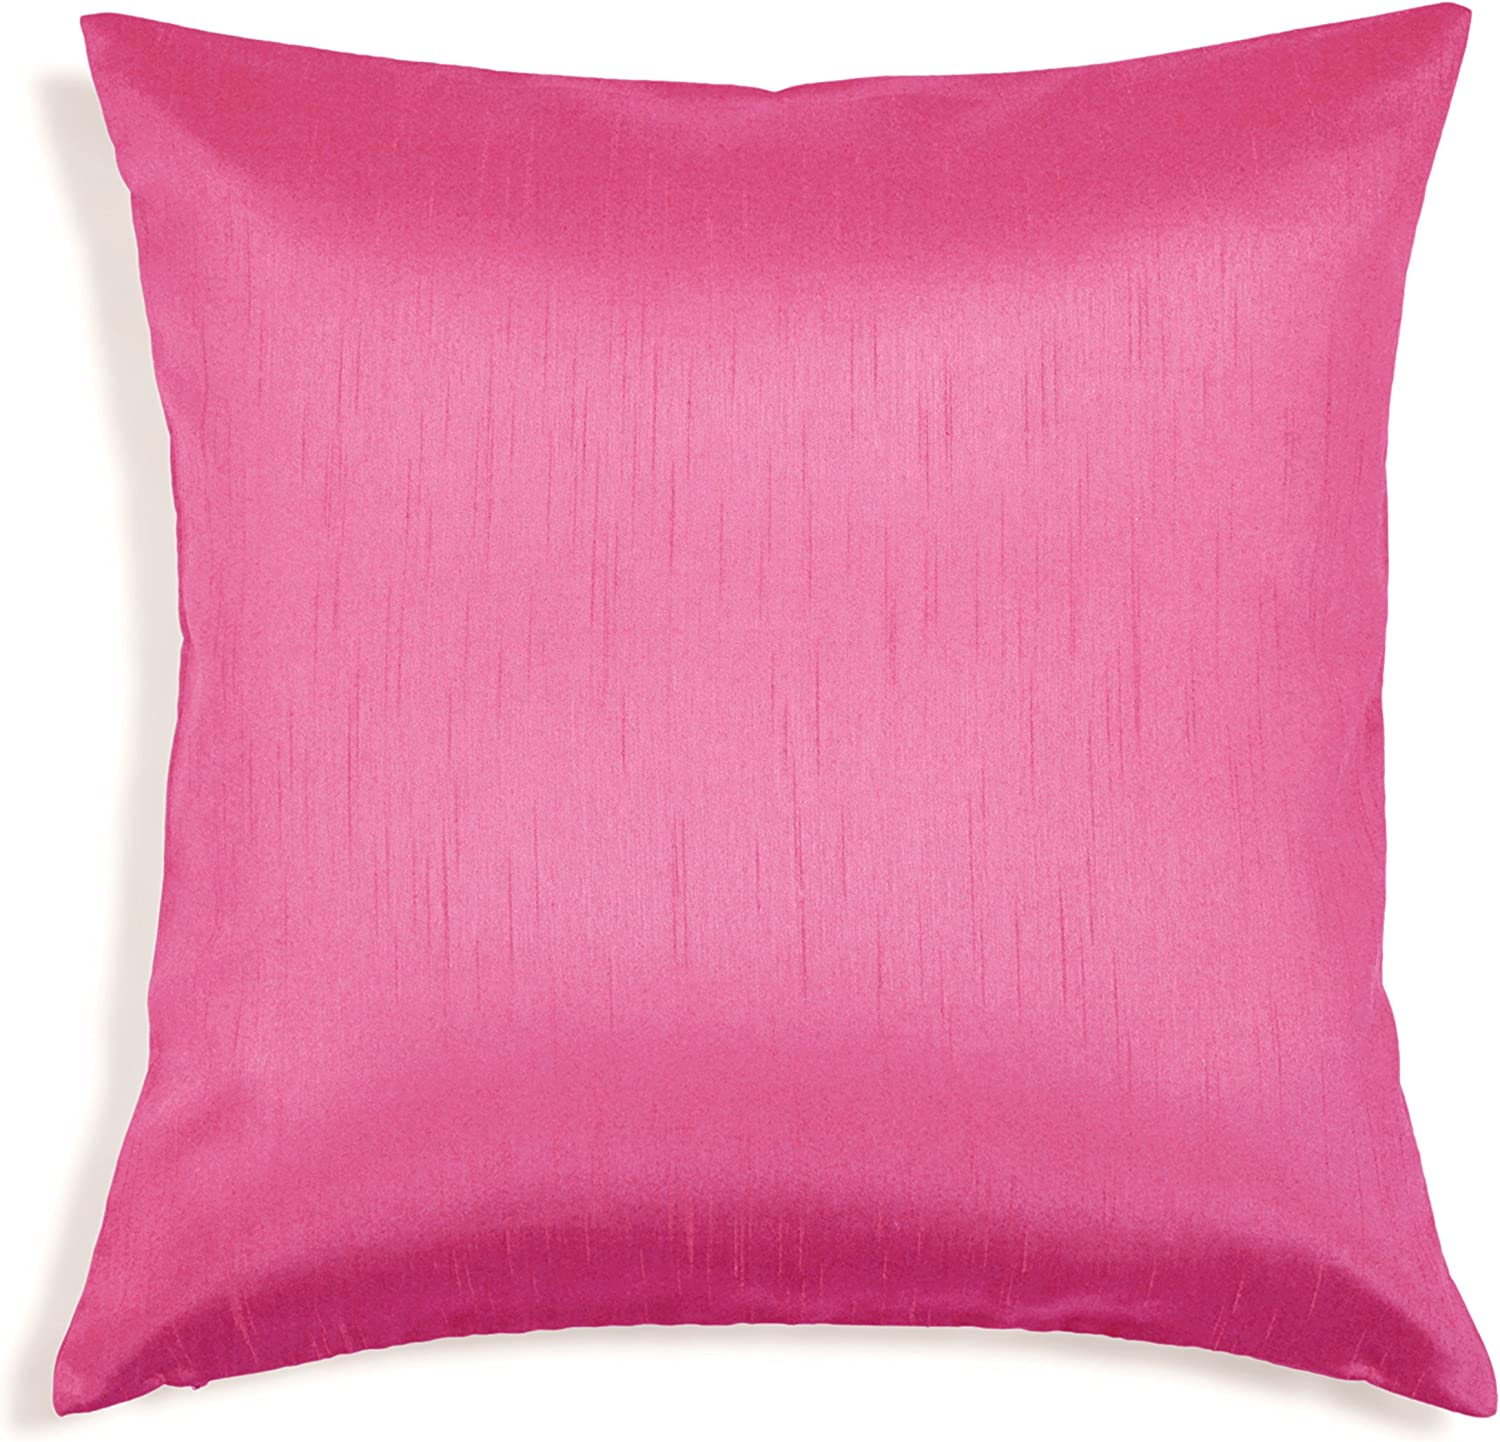 Aiking Home Solid Faux Silk Euro Sham/Pillow Cover, Zipper Closure, 26 by 26 Inches, Hot Pink